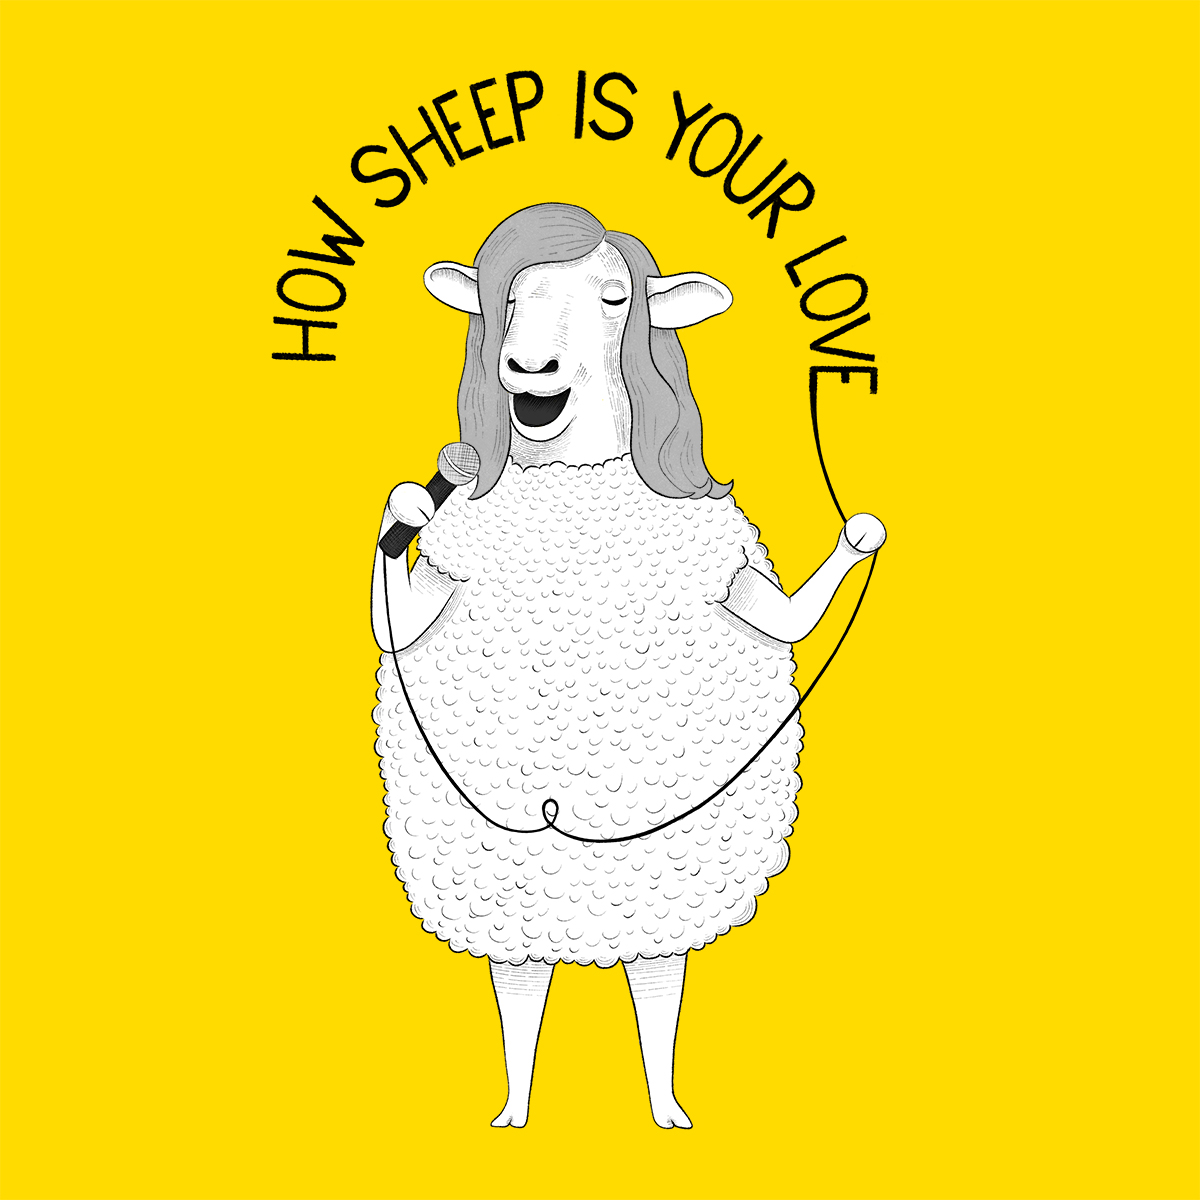 Sheep singing Bee Gees karaoke Illustration